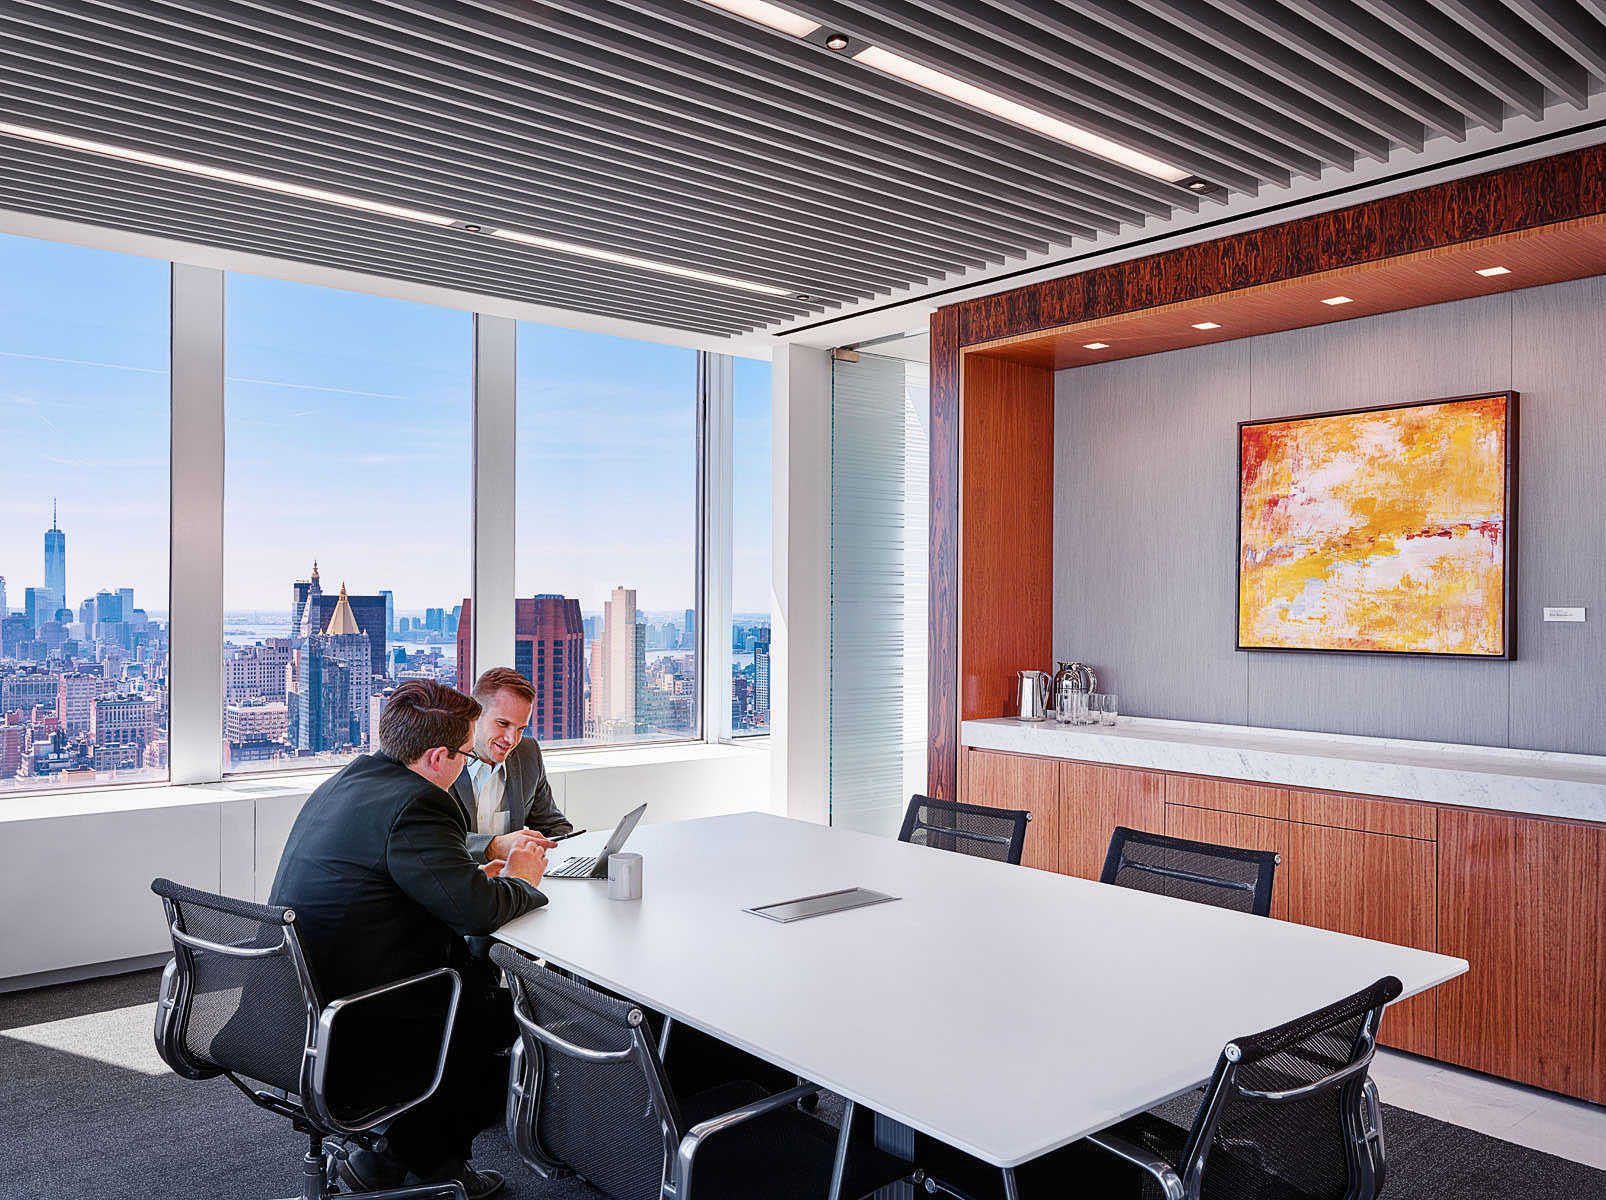 HOK and Polsinelli have transformed the typically private and closed-down feel of a law office into a transparent, natural light filled space.